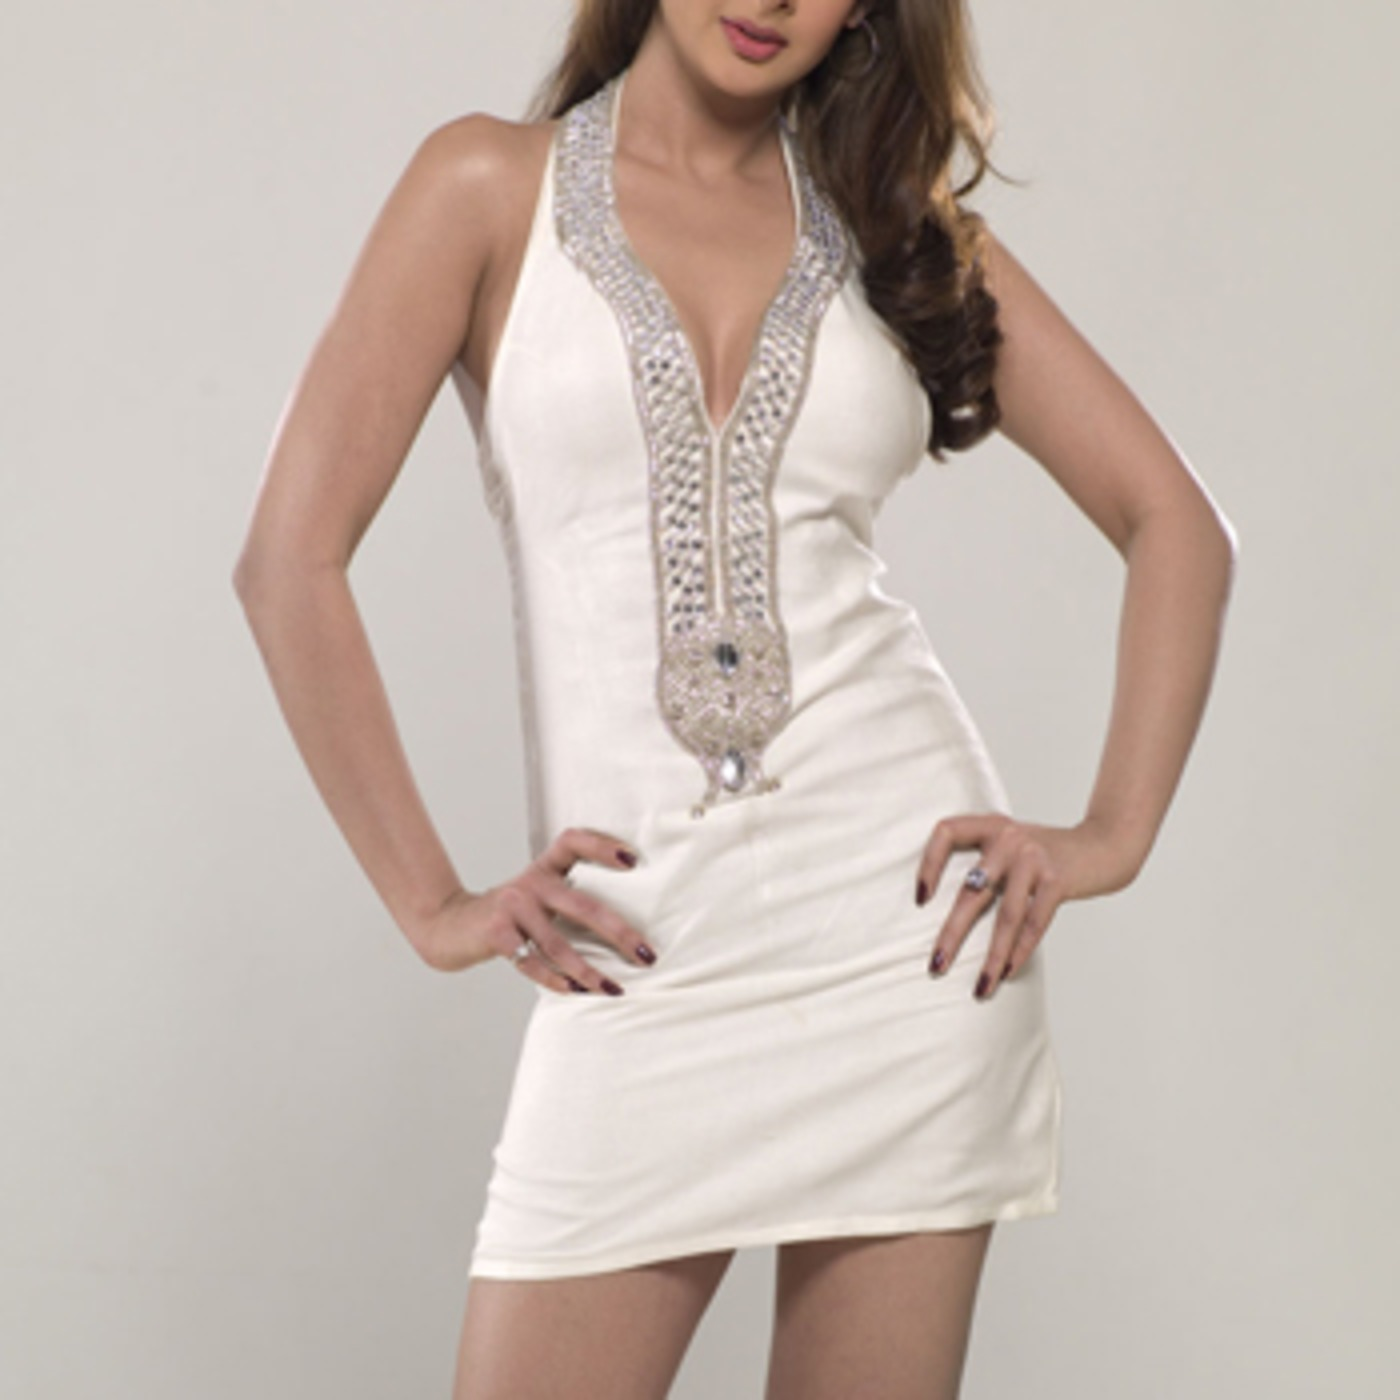 Preeti Jhangiani Hot Images and Wallpapers ~ All Celebrity